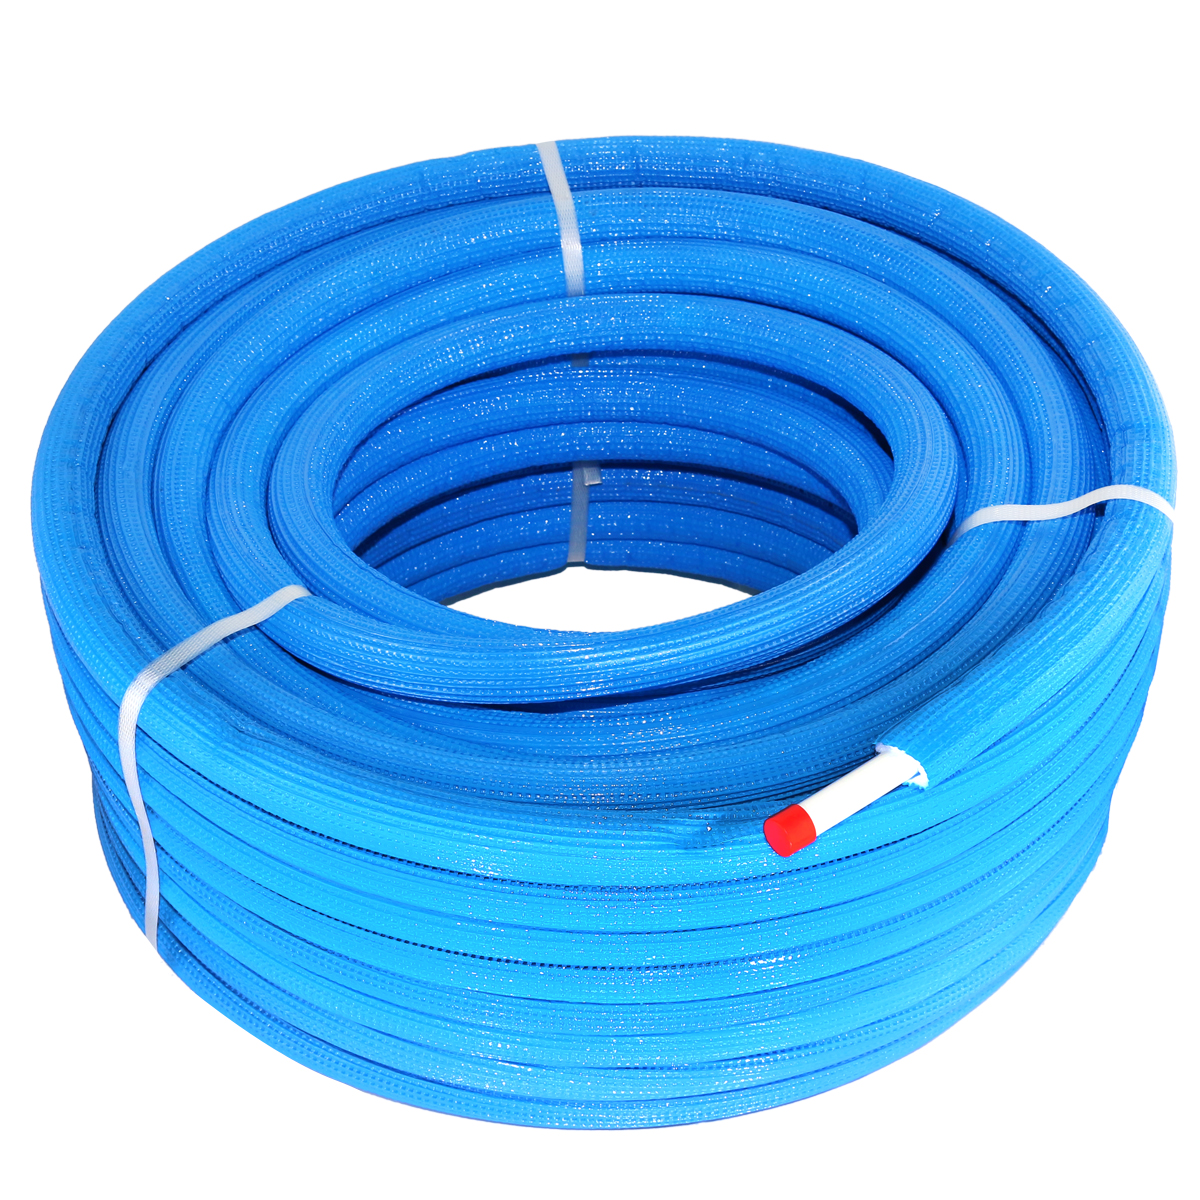 Insulation Pipe Multilayer 16 x 2 x 50 m PEX-AL-PEX Blue